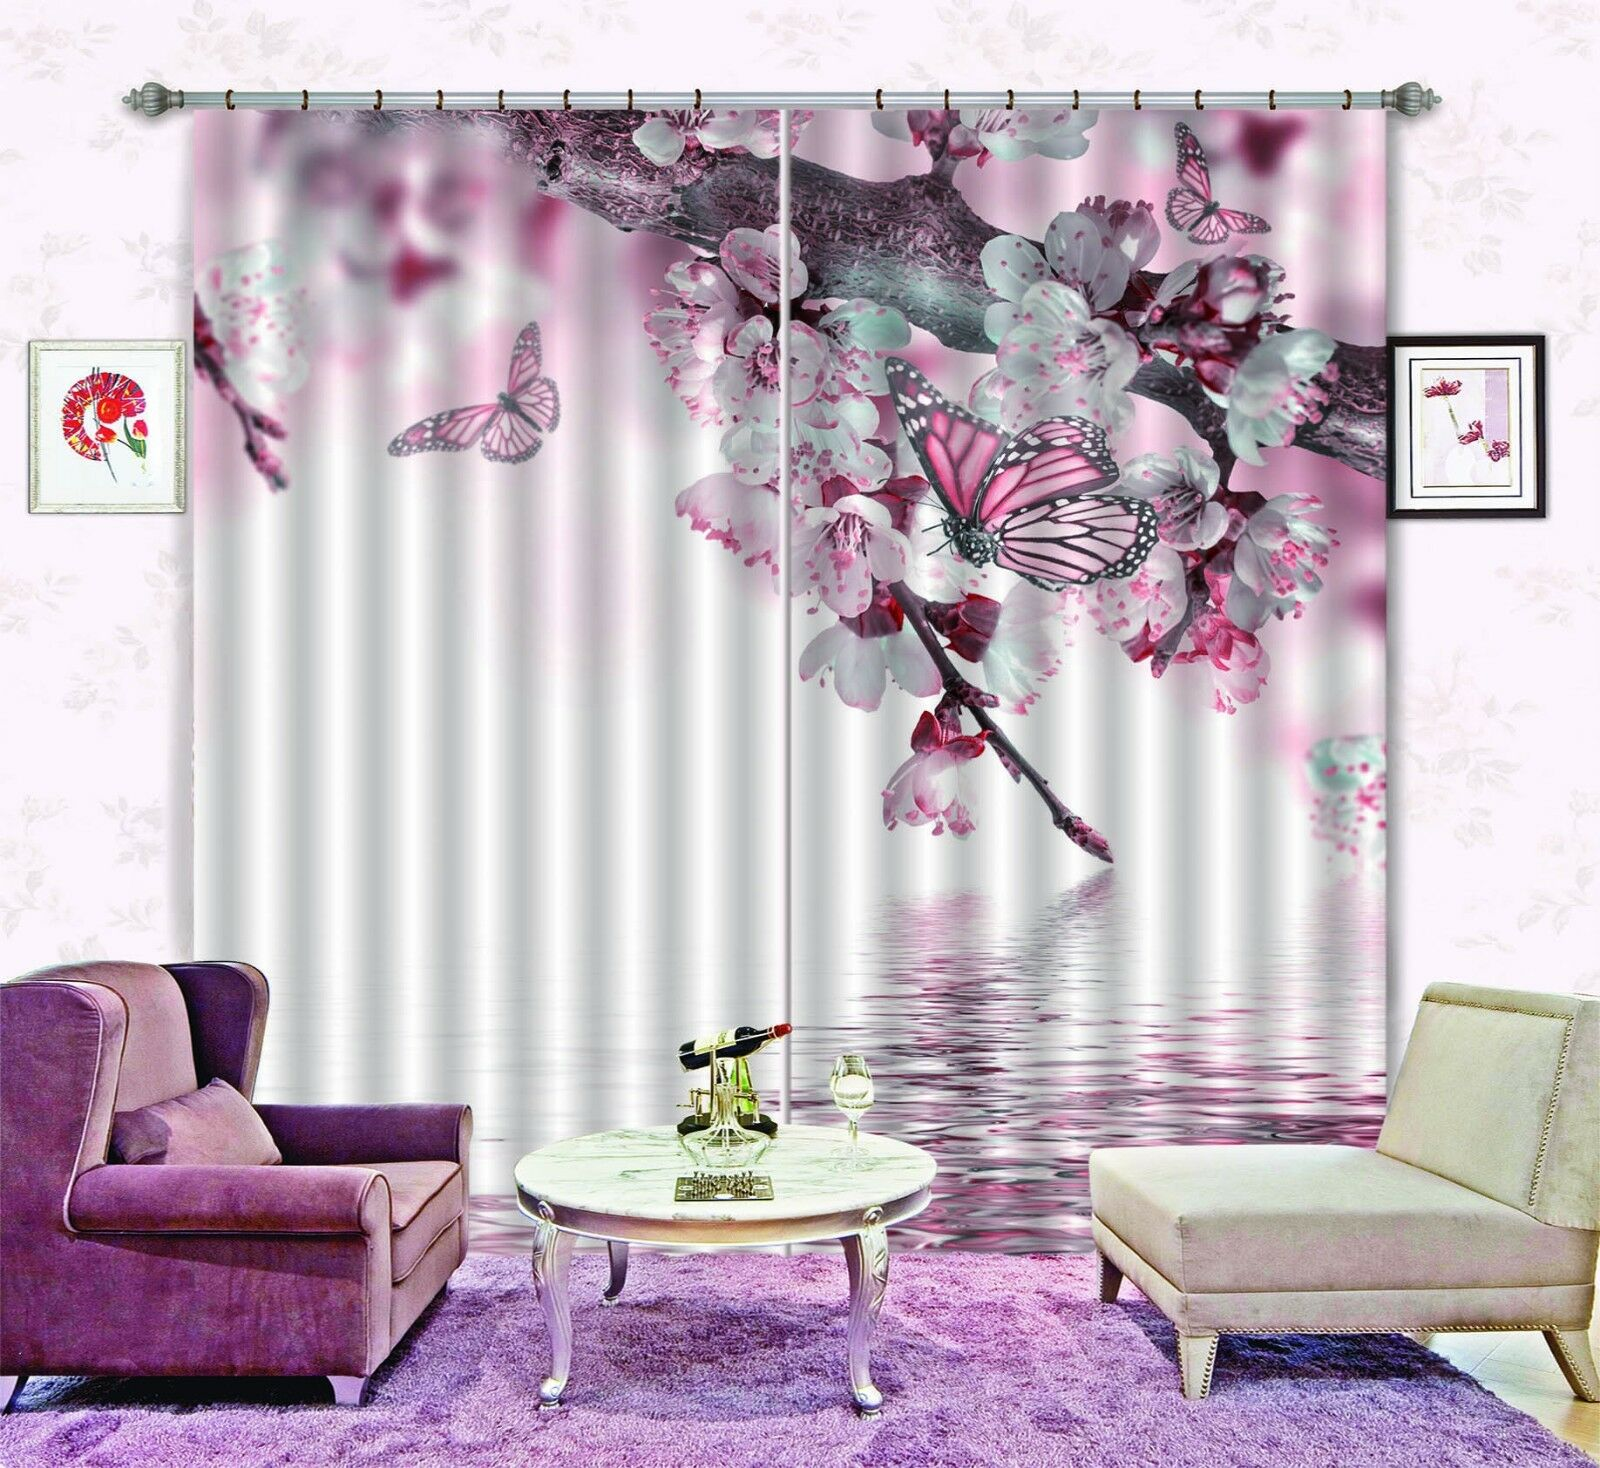 3D Butterfly 47 Blockout Photo Curtain Printing Curtains Drapes Fabric Window AU